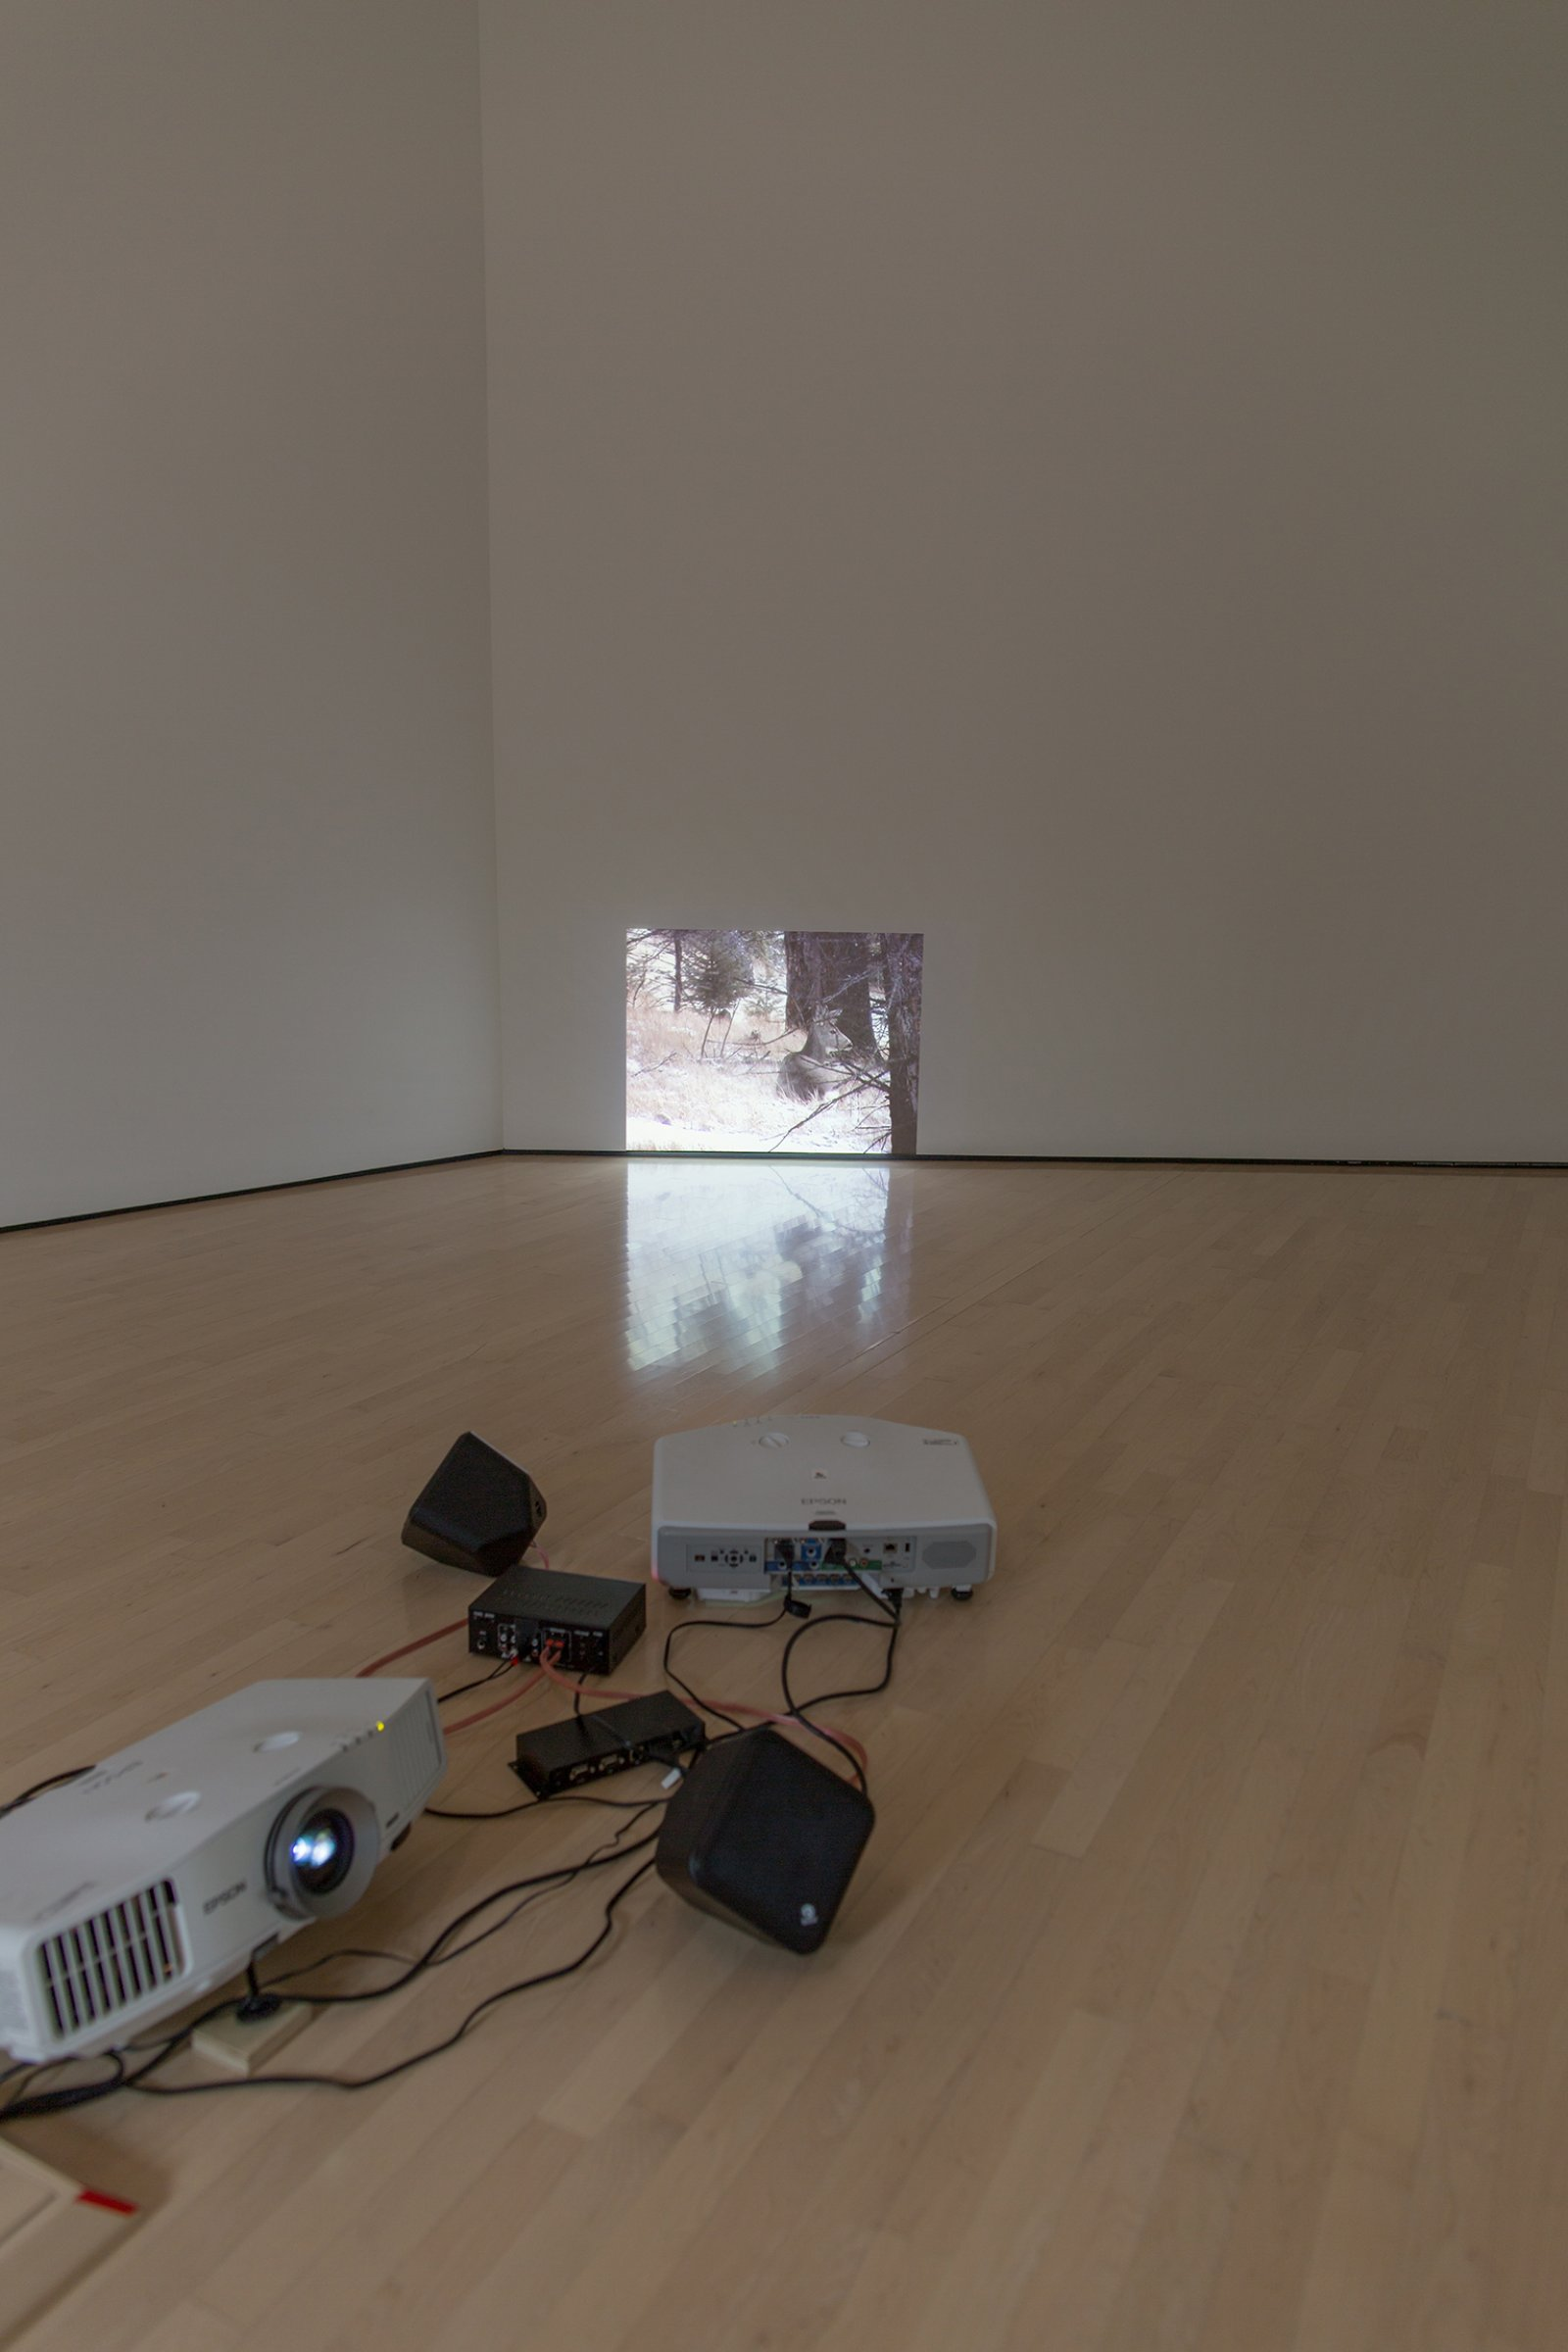 Duane Linkater, Me and my cousin are not hunters, 2013, video projection, 12 minutes, 14 seconds. Installation view, Field Station: Duane Linklater, MSU Broad, East Lansing, MI, 2017 by Duane Linklater